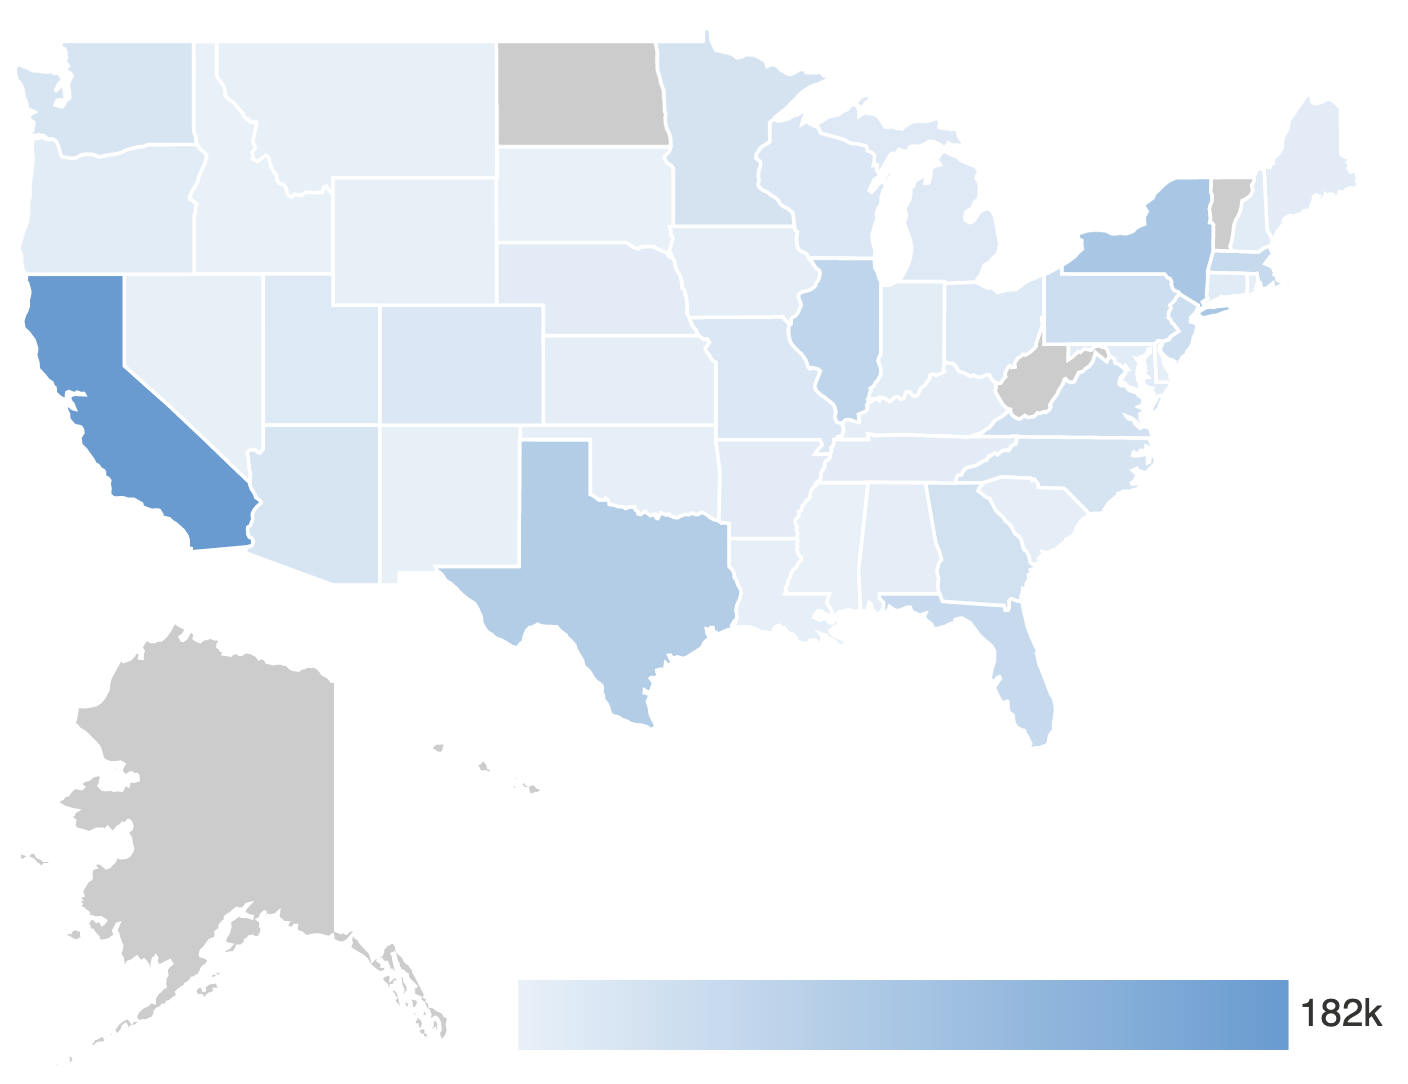 CheckMarket survey respondent location map - USA